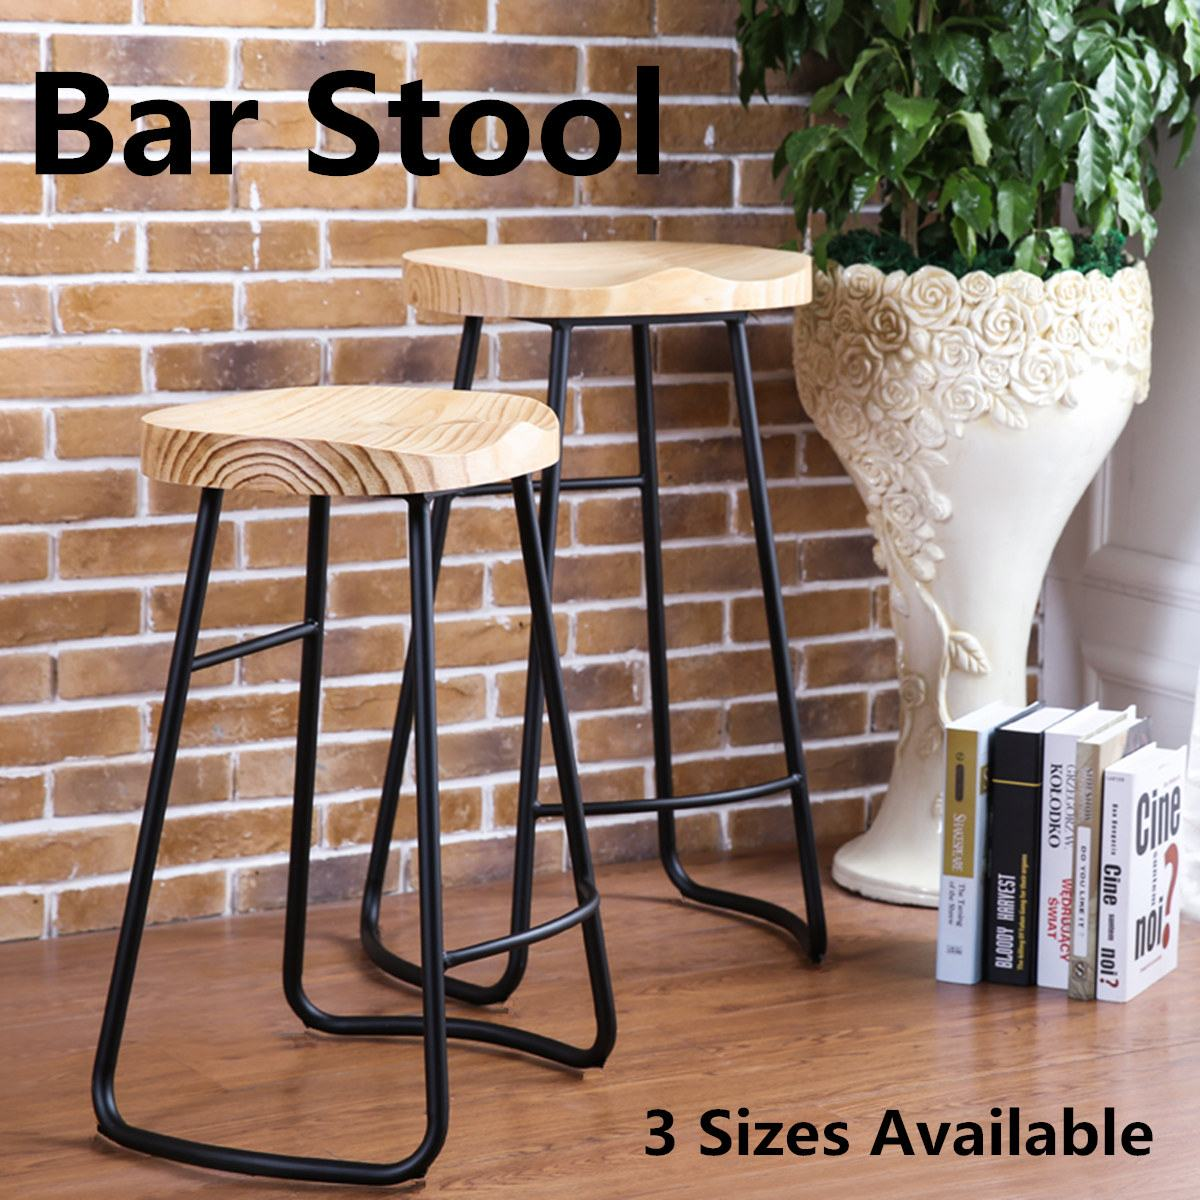 Bar Furniture Fauteuil Sedia Stoel Sgabello Barkrukken Bancos Moderno Taburete De La Barra Sandalyeler Silla Cadeira Stool Modern Bar Chair Beautiful In Colour